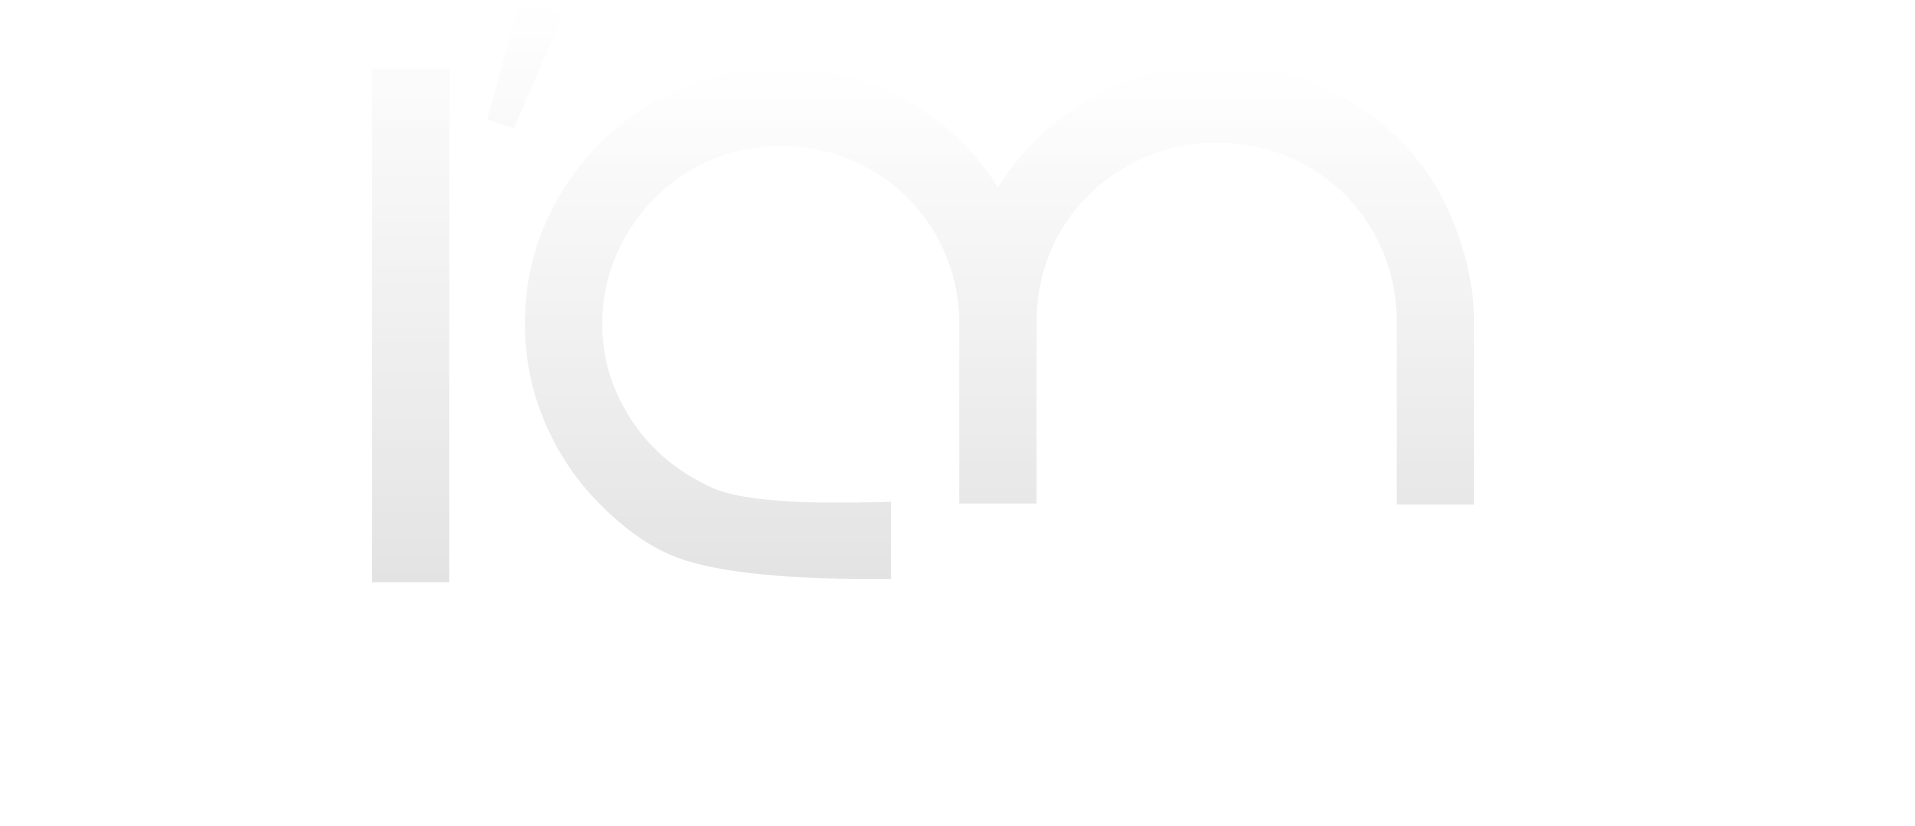 I AM Entertainmentgroup